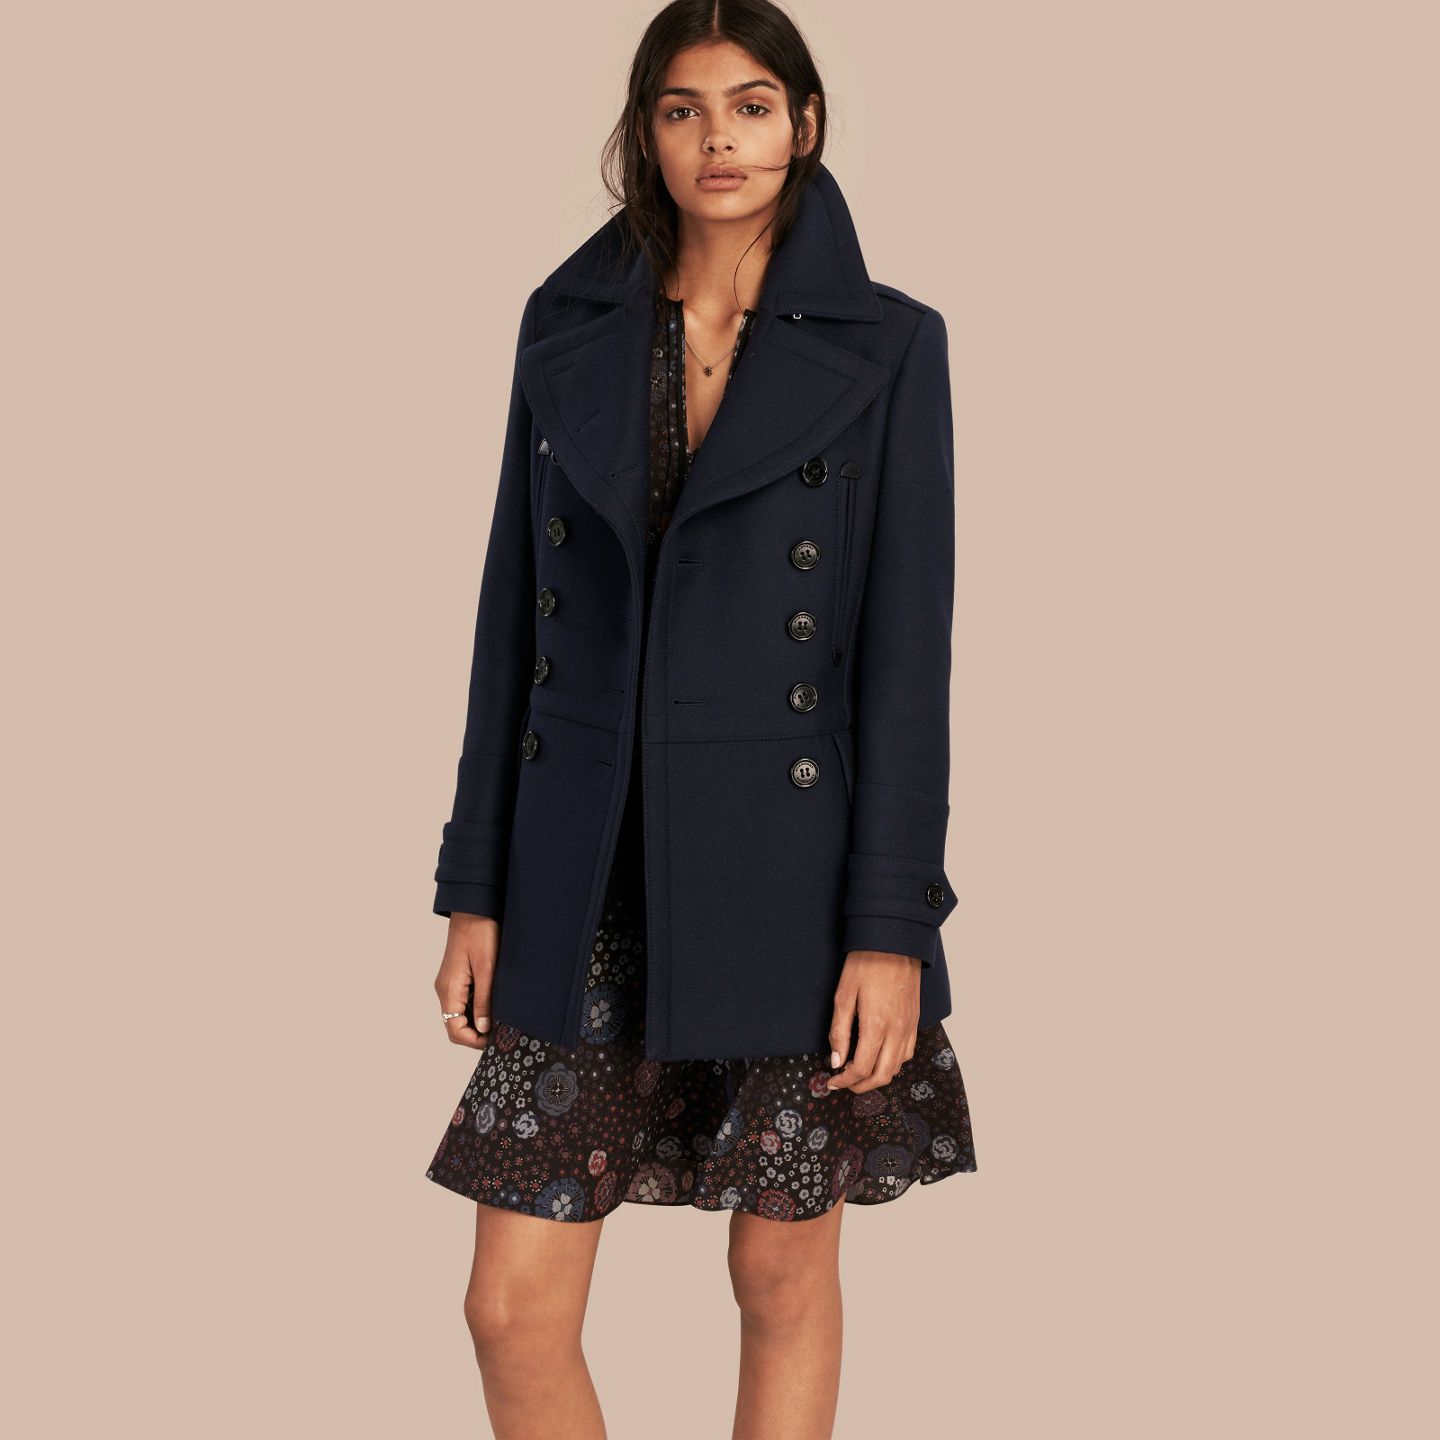 Women's Coats | Pea Coats, Duffle Coats, Parkas & more | Burberry ...